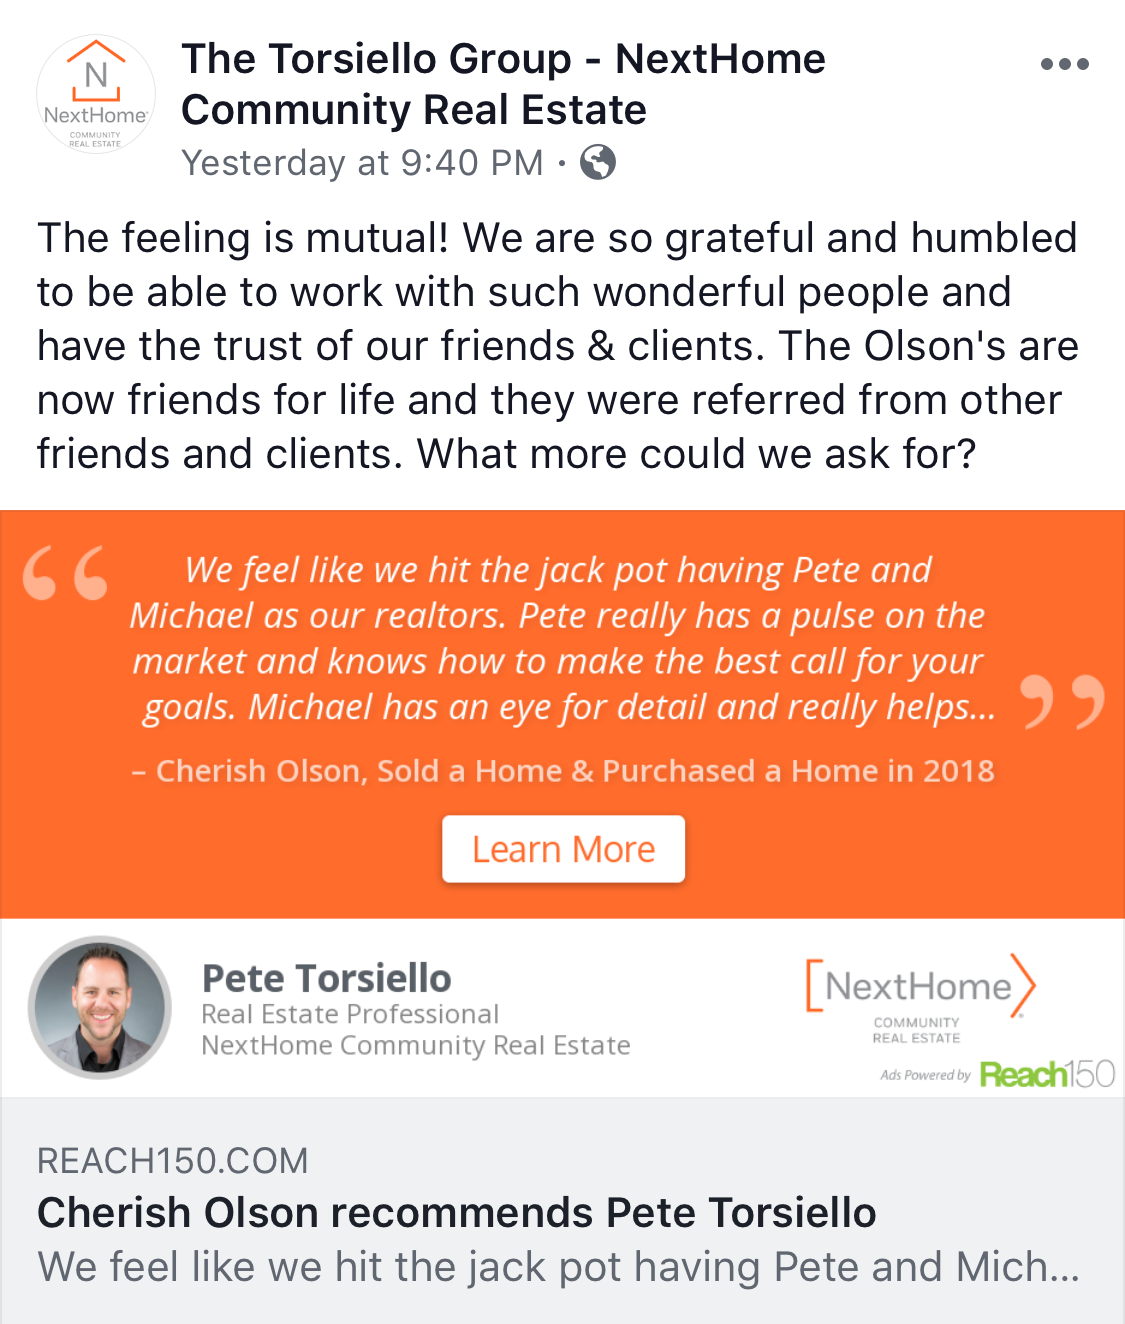 Las Vegas Realtor - Pete & Michael, The Torsiello Group - NextHome - Review Reply